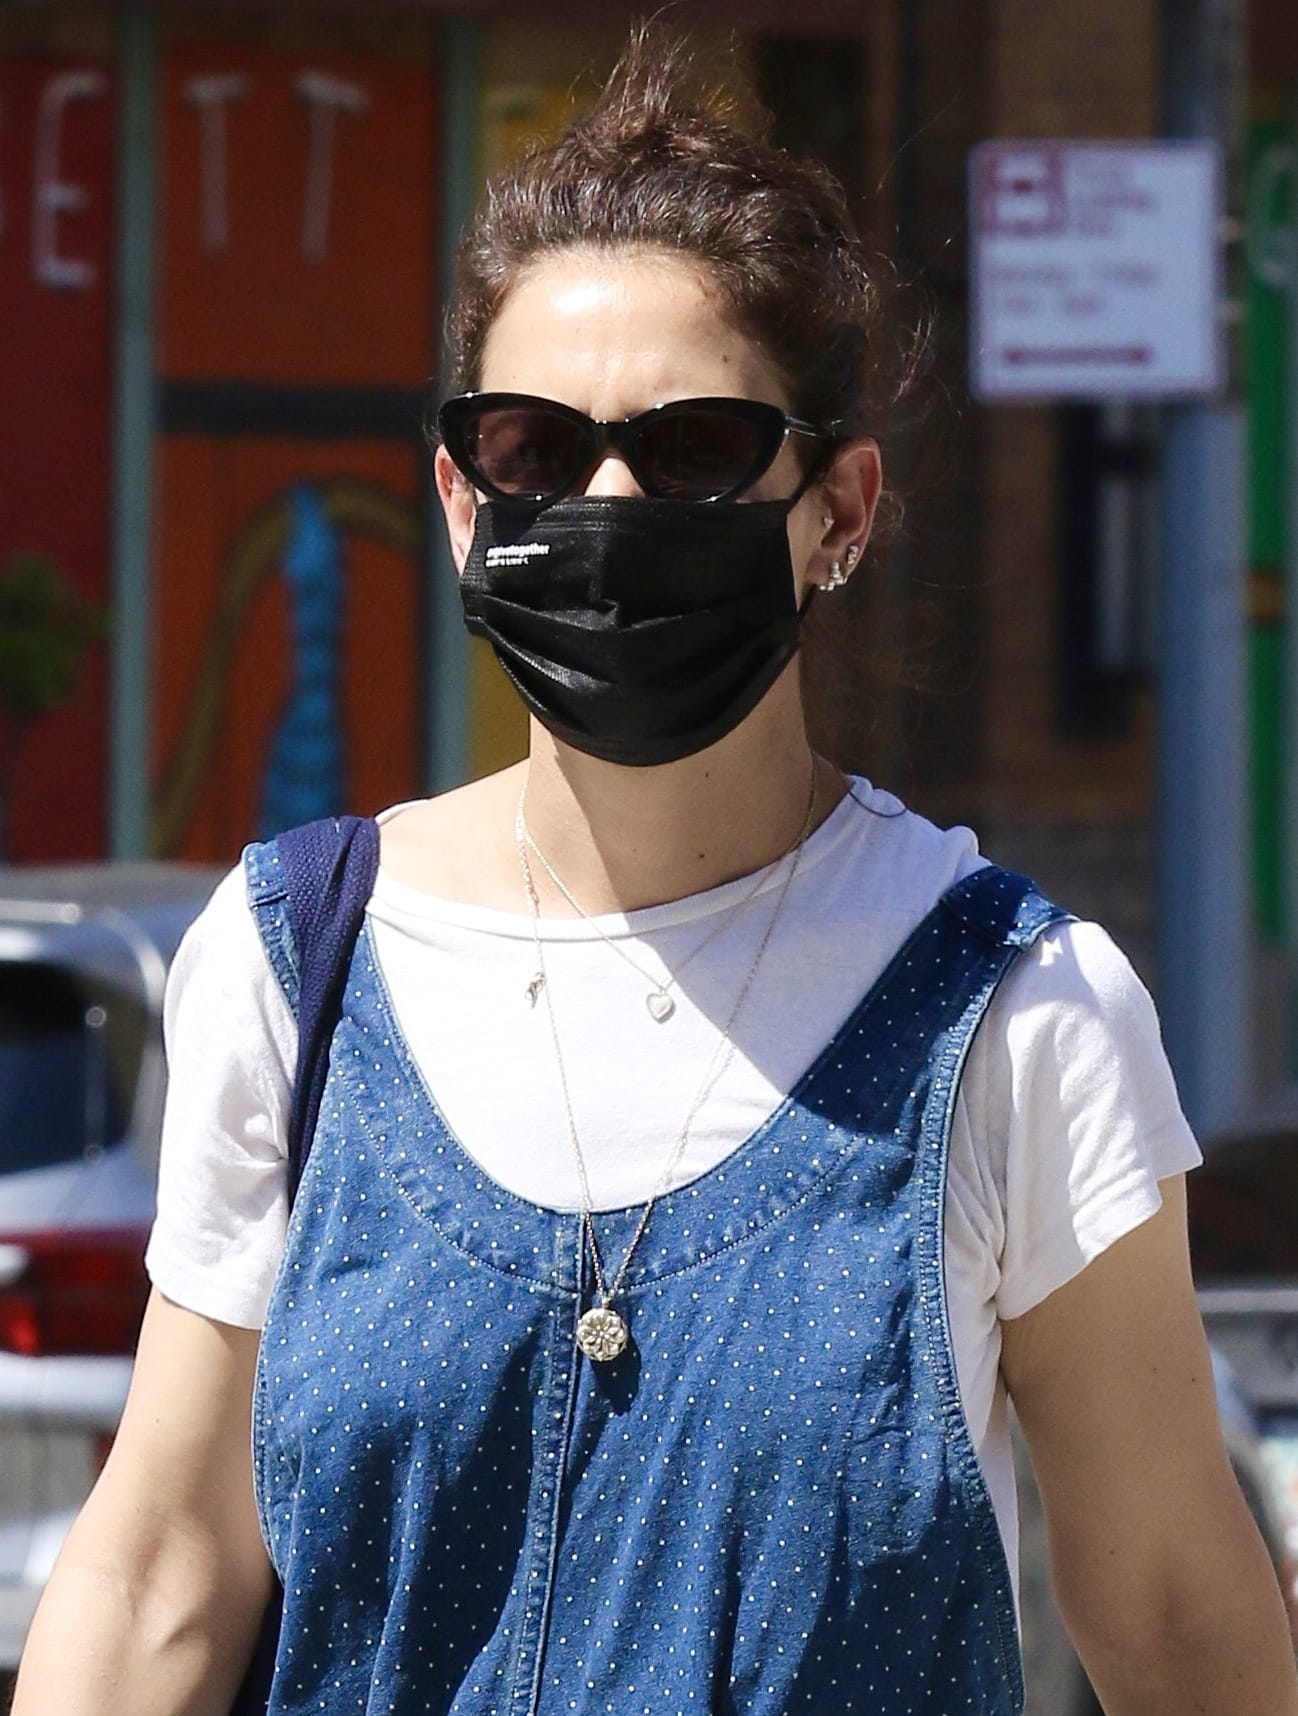 Katie Holmes pulls her naturally wavy tresses up into a messy bun and shields her eyes behind a pair of cat-eye sunglasses